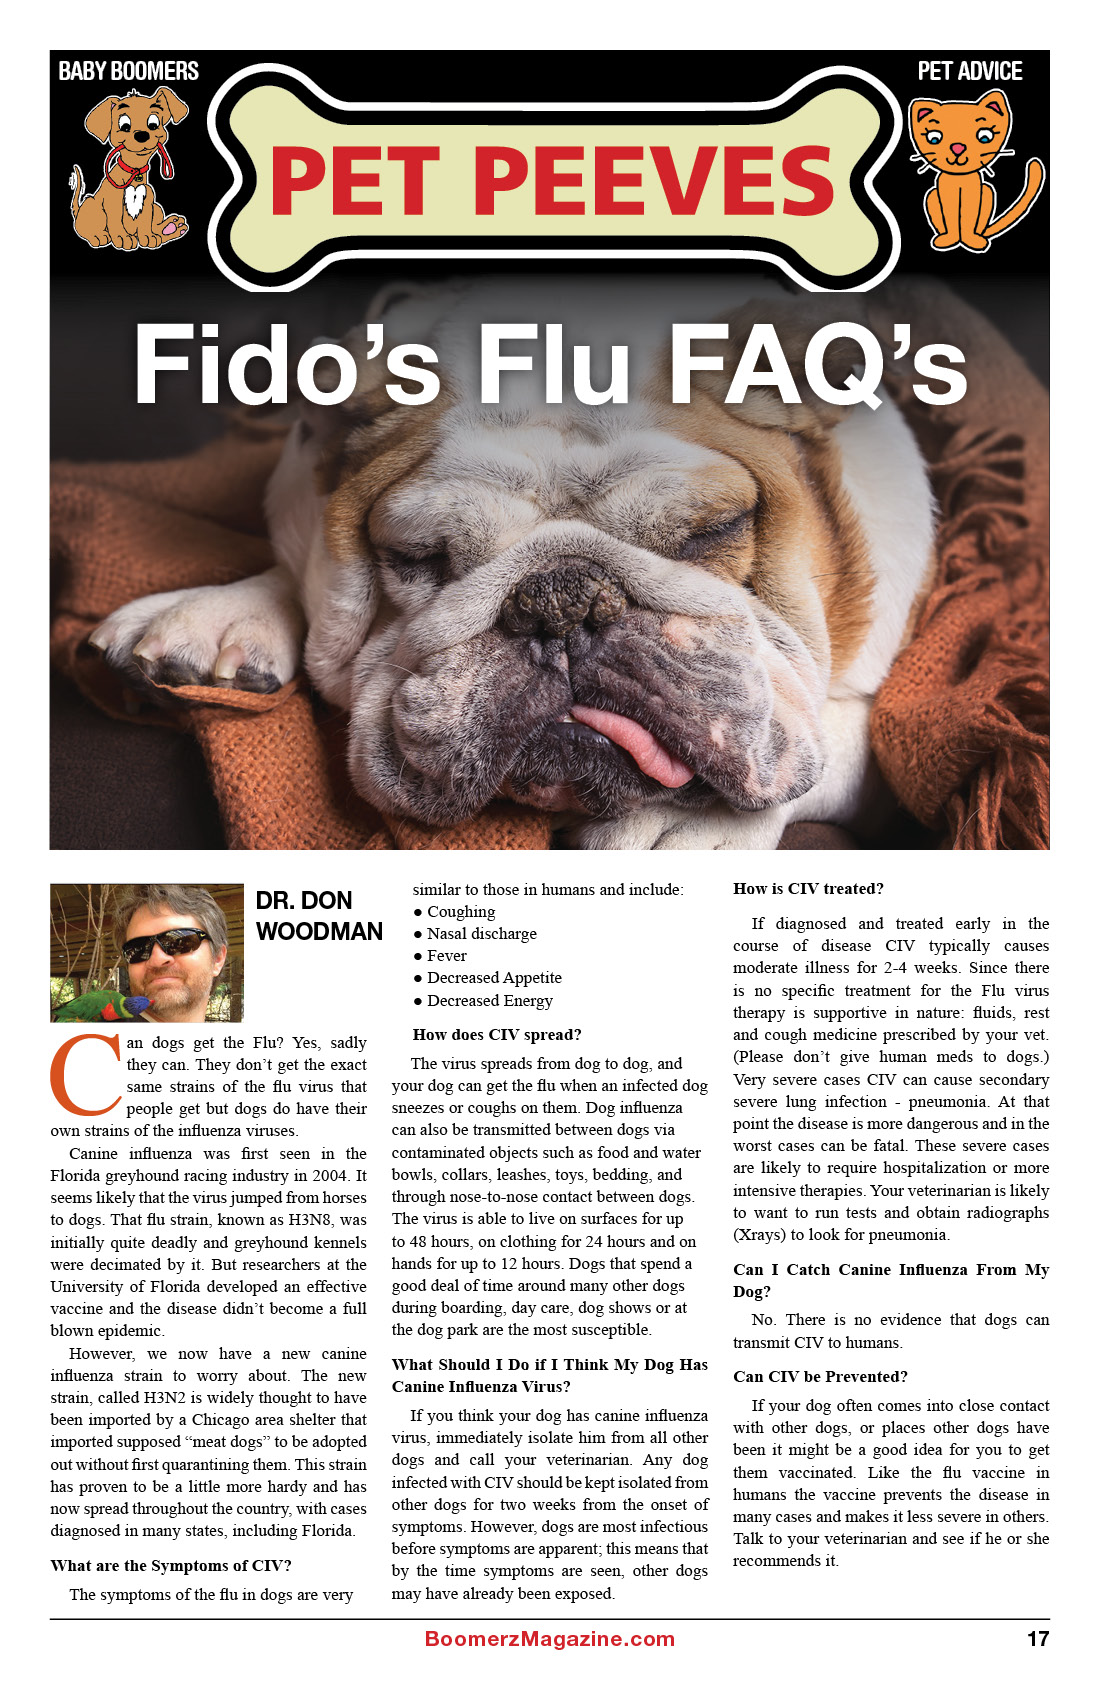 2018 October Boomerz Magazine Page 17 Pet Peeves Fidos Flu FAQ